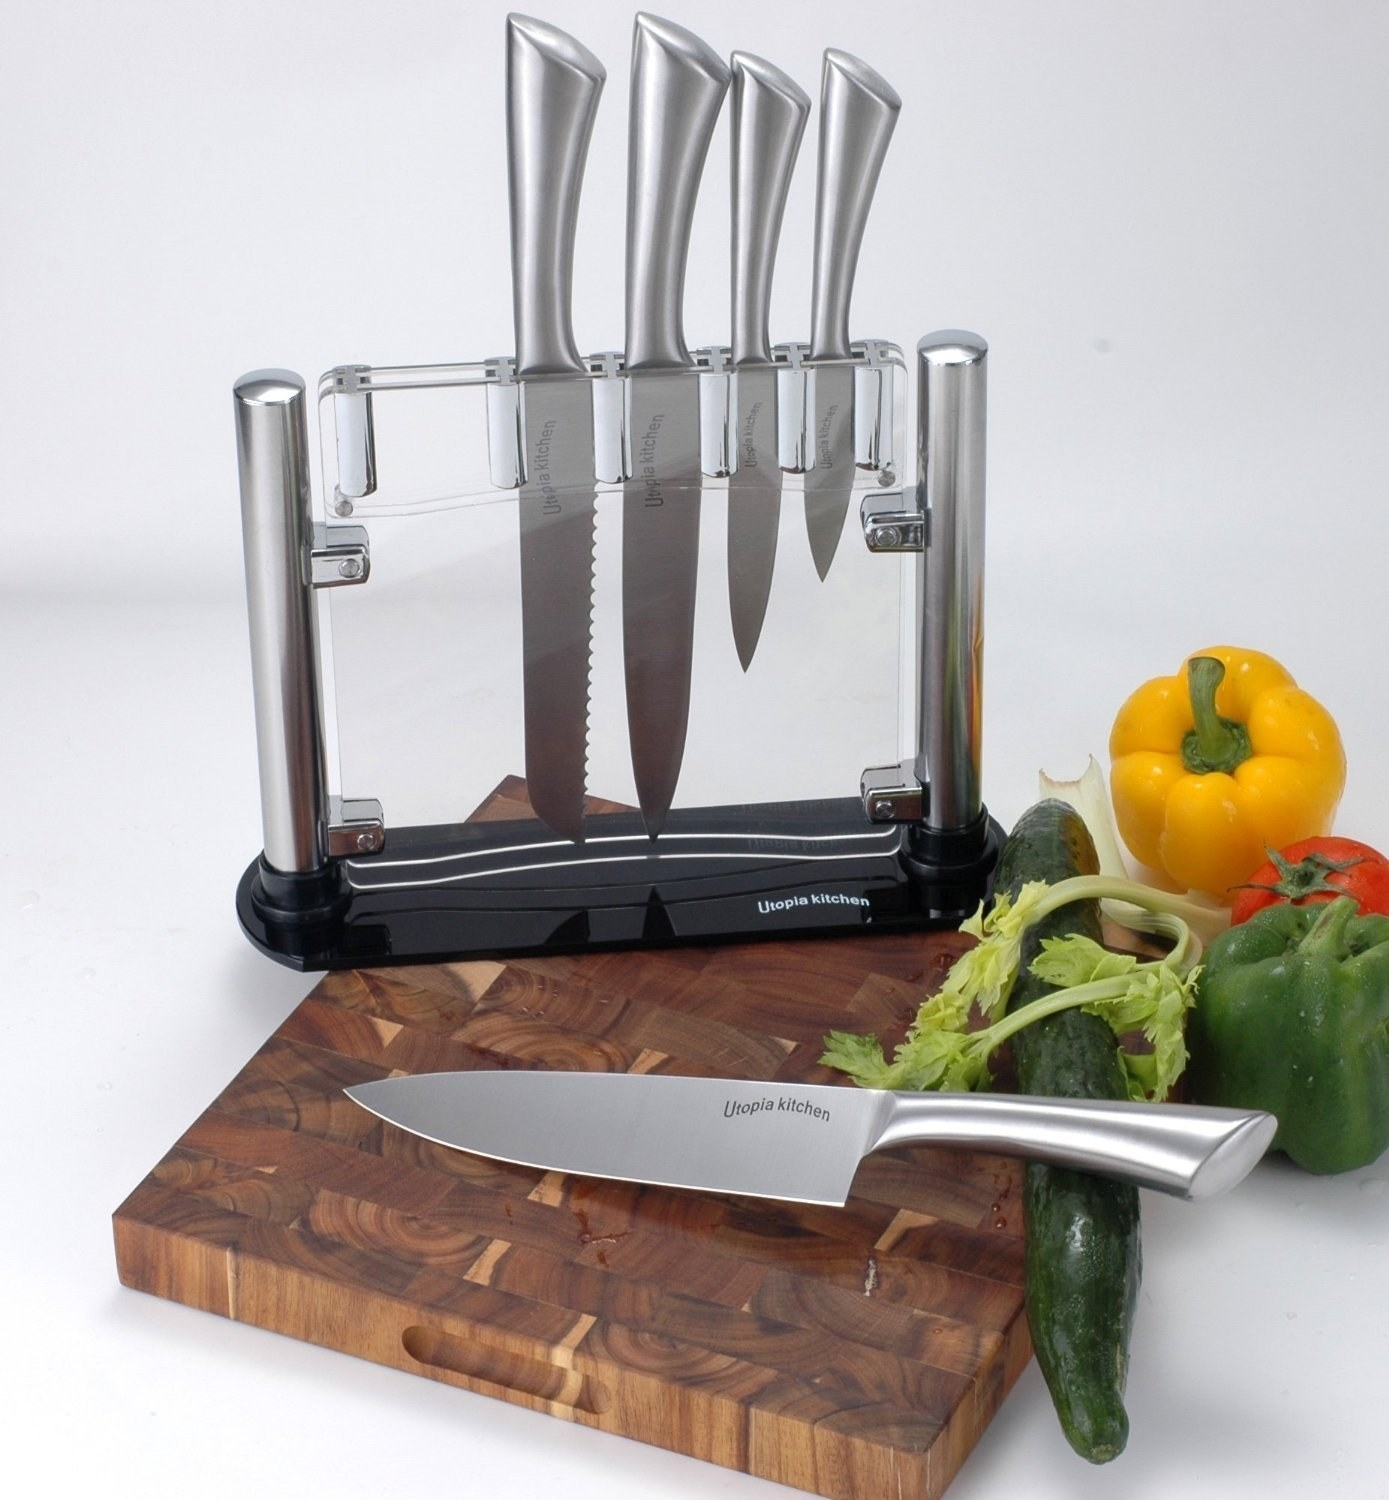 Best Set Of Kitchen Knives For The Money: 17 Of The Best Knife Sets You Can Get On Amazon In 2018